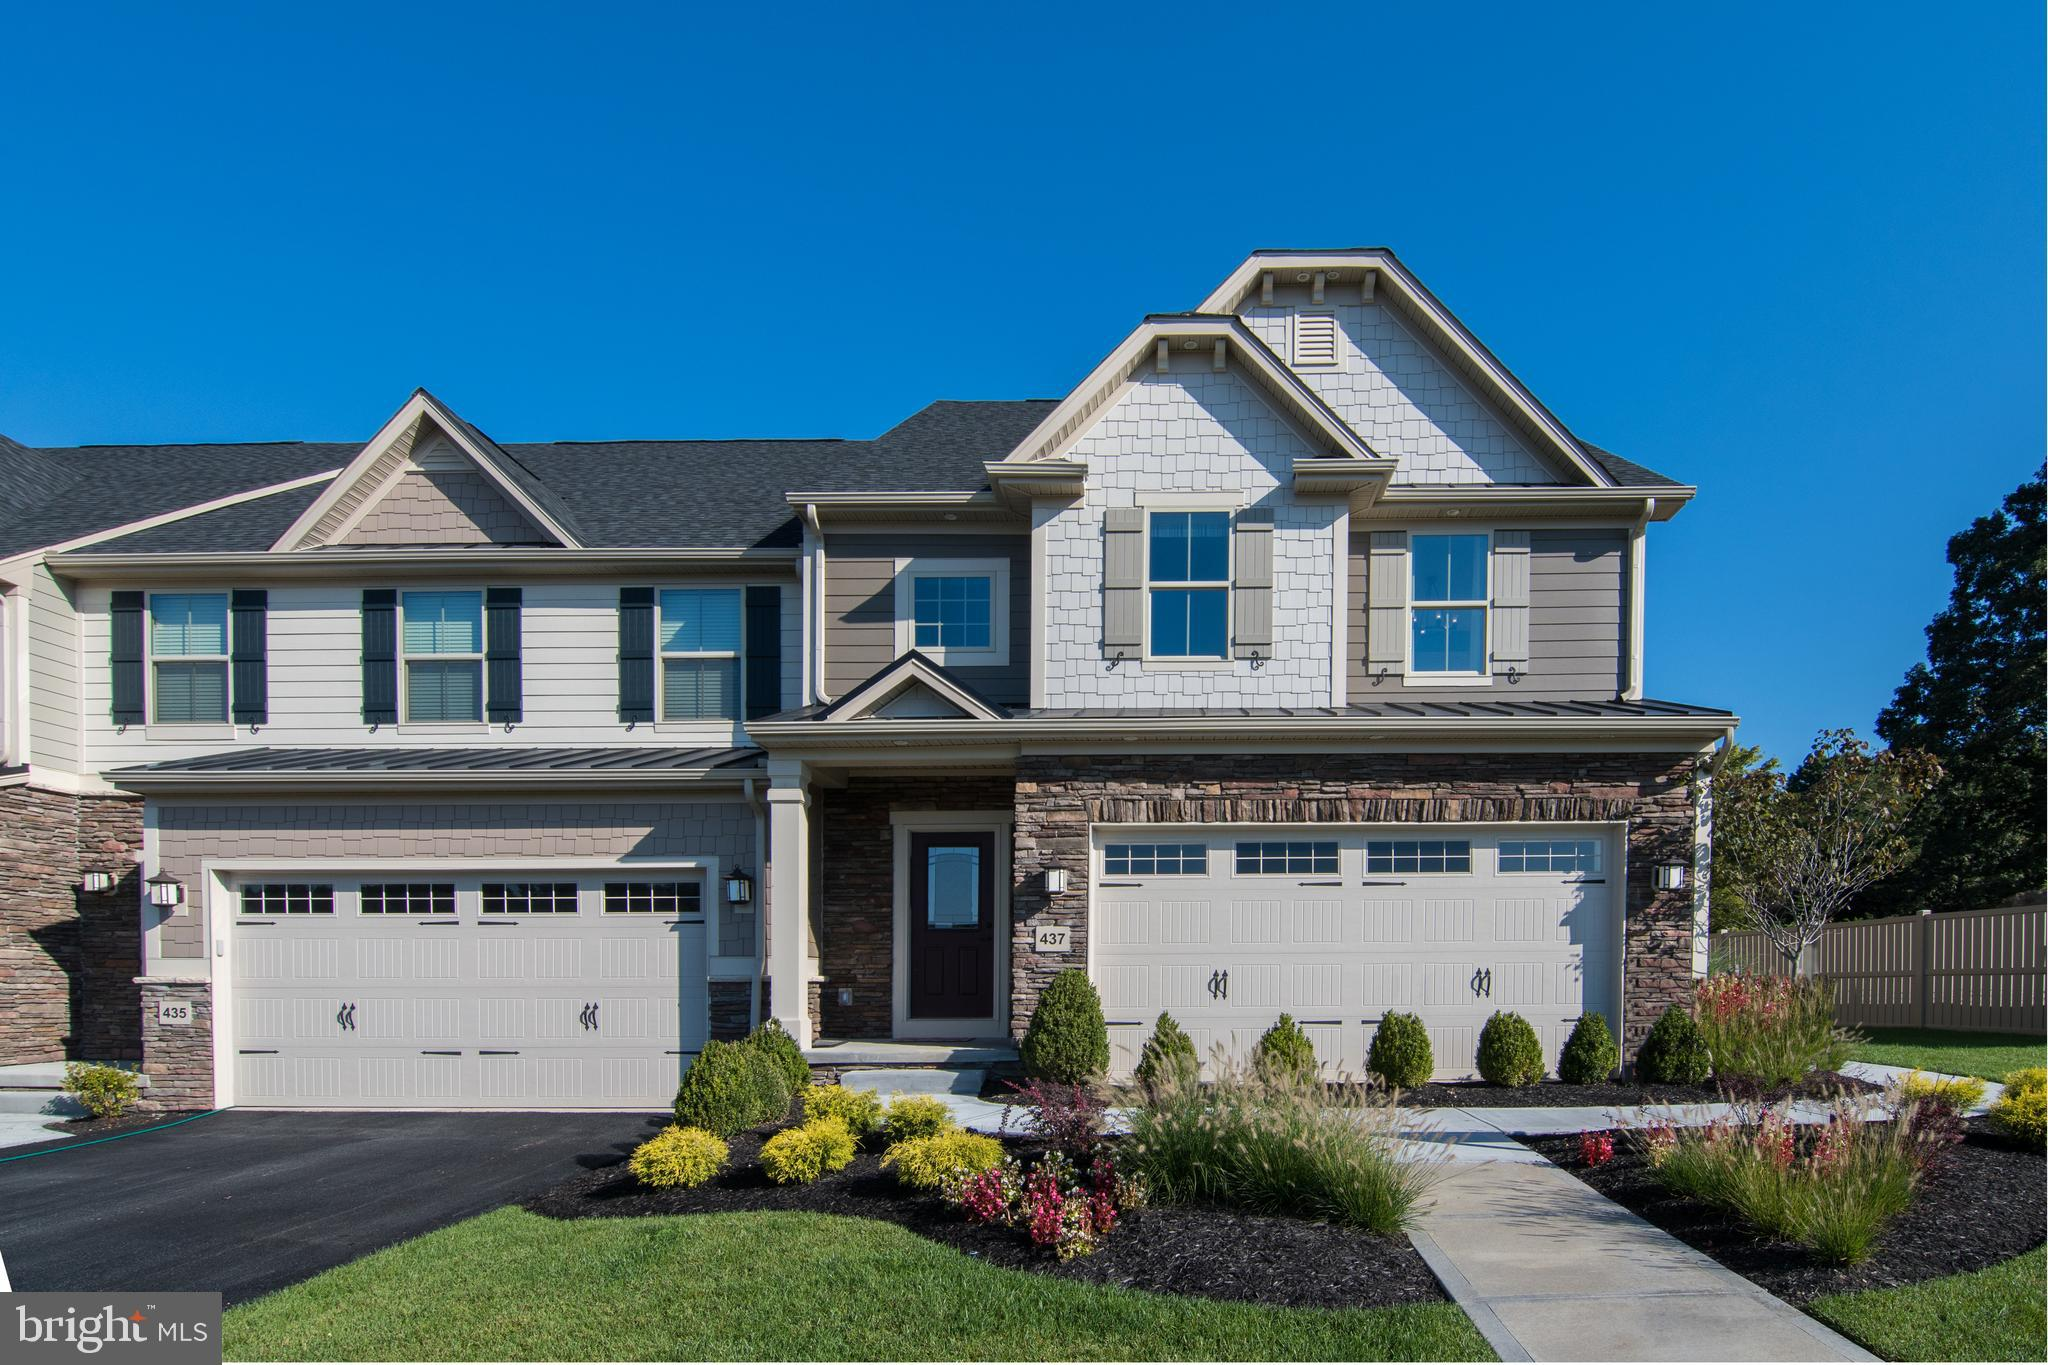 Welcome to the Franklin Hall at Greystone by NVHomes , a community that more than 90 people have already decided to call home!! Luxury Twin Homes featuring 1st floor owners suites in a spectacular estate setting near Rt. 100, 202, the 322 bypass, and West Chester Borough. From the moment you step into the Franklin Hall you will fall in love with the elegant yet functional style, with every amenity located on the first floor for the ultimate in convenience. The expansive Foyer frames your view into the formal Dining Room and Great Room. The gourmet kitchen is a cooks delight with a breakfast bar that gives plenty of access to the dining area while the Great Room is light and airy, perfect for entertaining. The Owner's Suite features a gigantic walk-in closet and owners bath with dual vanity and shower. Upstairs, there are two additional bedrooms -- each with walk-in closets -- a Loft, full bath, and plenty of storage space. The space doesnt end there. Youll find a finished lower level featuring over 900 sq. ft. with a Recreation Room and Bathroom. The Luxury living extends beyond the inside of your home. Living at Greystone gives you the curb appeal you have always wanted from hardieplank siding with natural stone accents to bluestone porches and much more!  Other floorplans and homesites are available. Photos are representative. NVHomes is taking precautionary measures  to protect our valued customers and employees. Our models are open by by appointment.